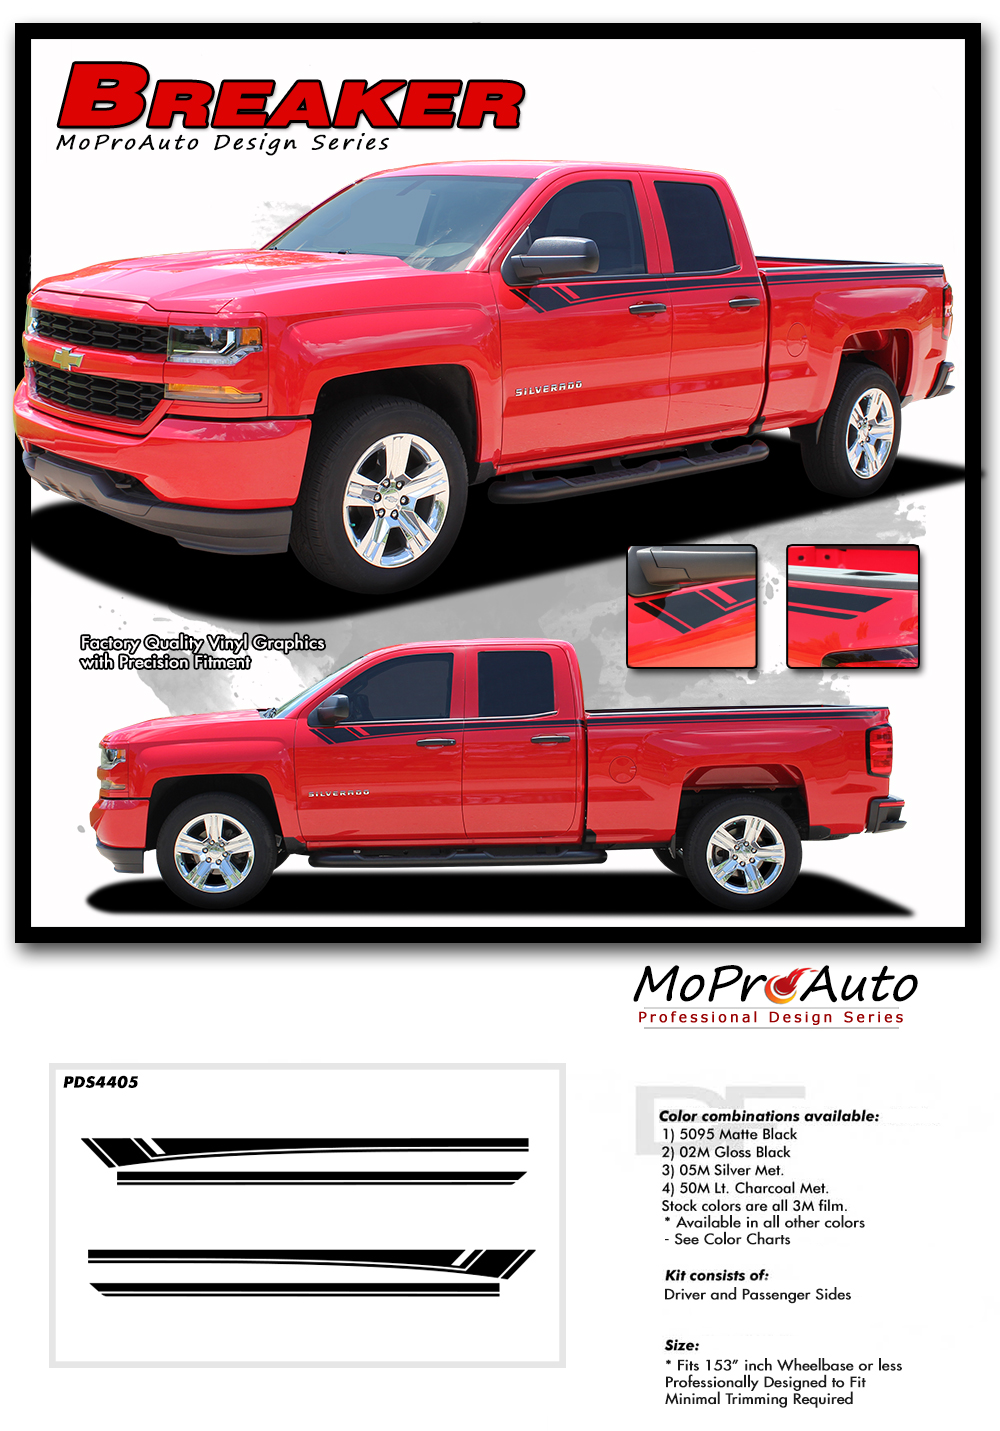 Car Truck Decals Emblems License Frames Car Truck Decals Stickers Chevrolet Silverado 2x Graphics Vinyl Body Decal Stickers Premium Quality Auto Parts Accessories Car Truck Parts